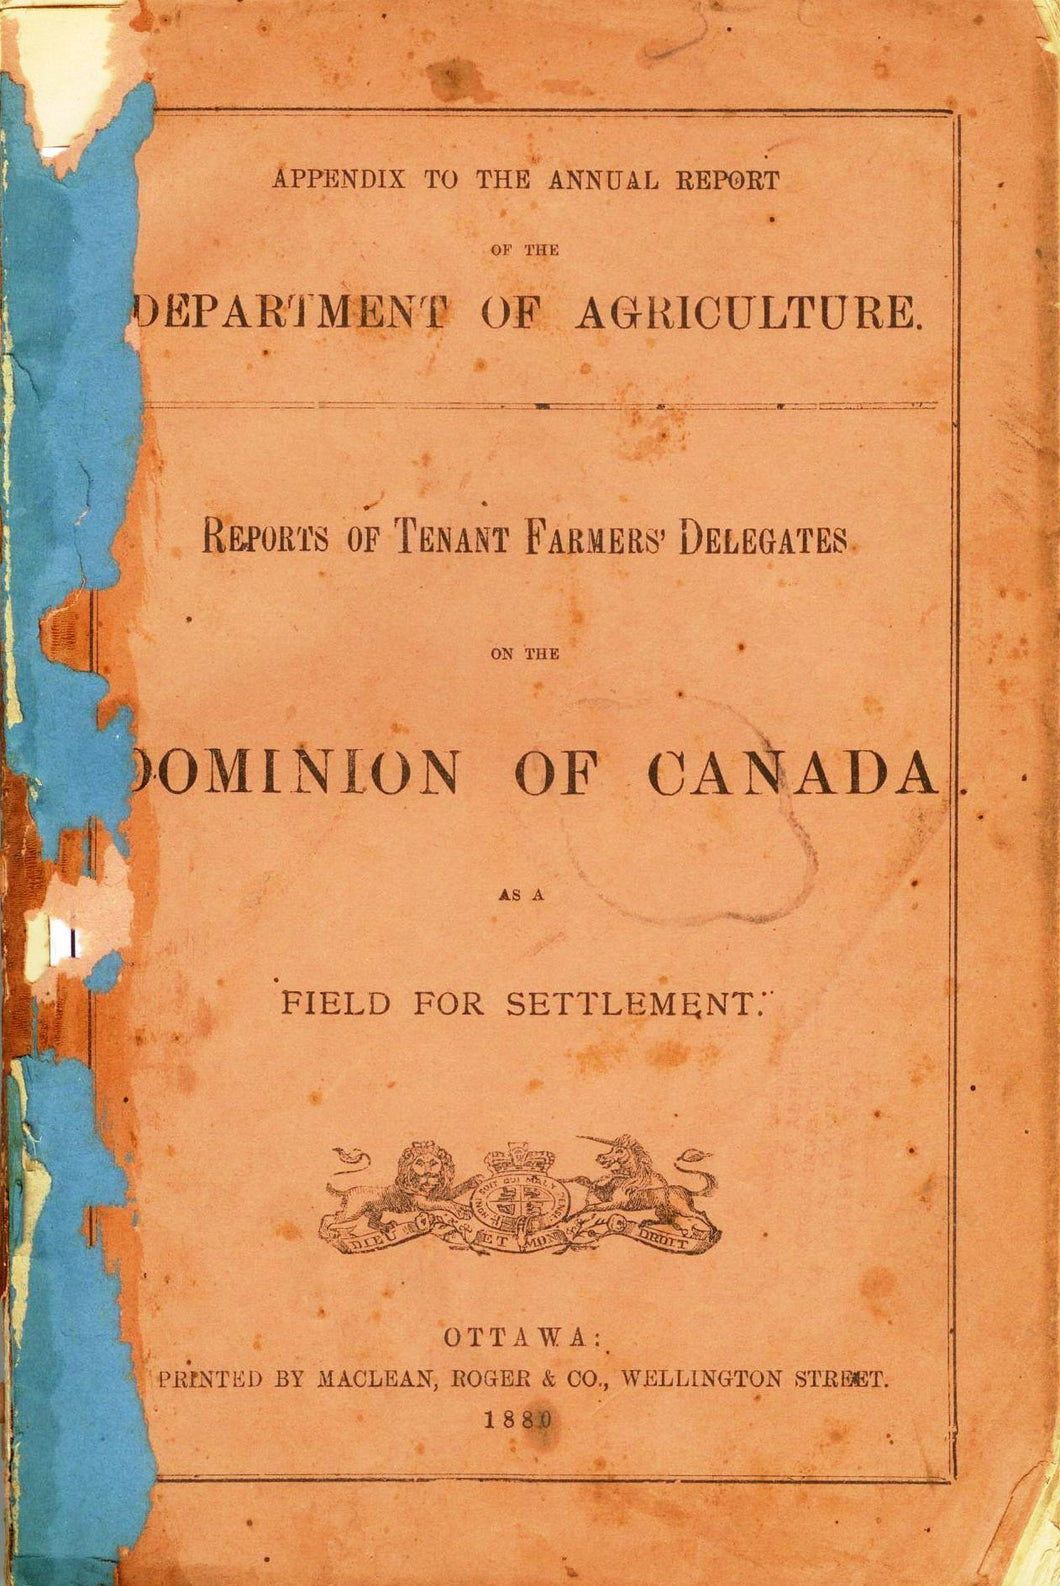 Reports of Tenant Farmers' Delegates on the Dominion of Canada as a Field For Settlement